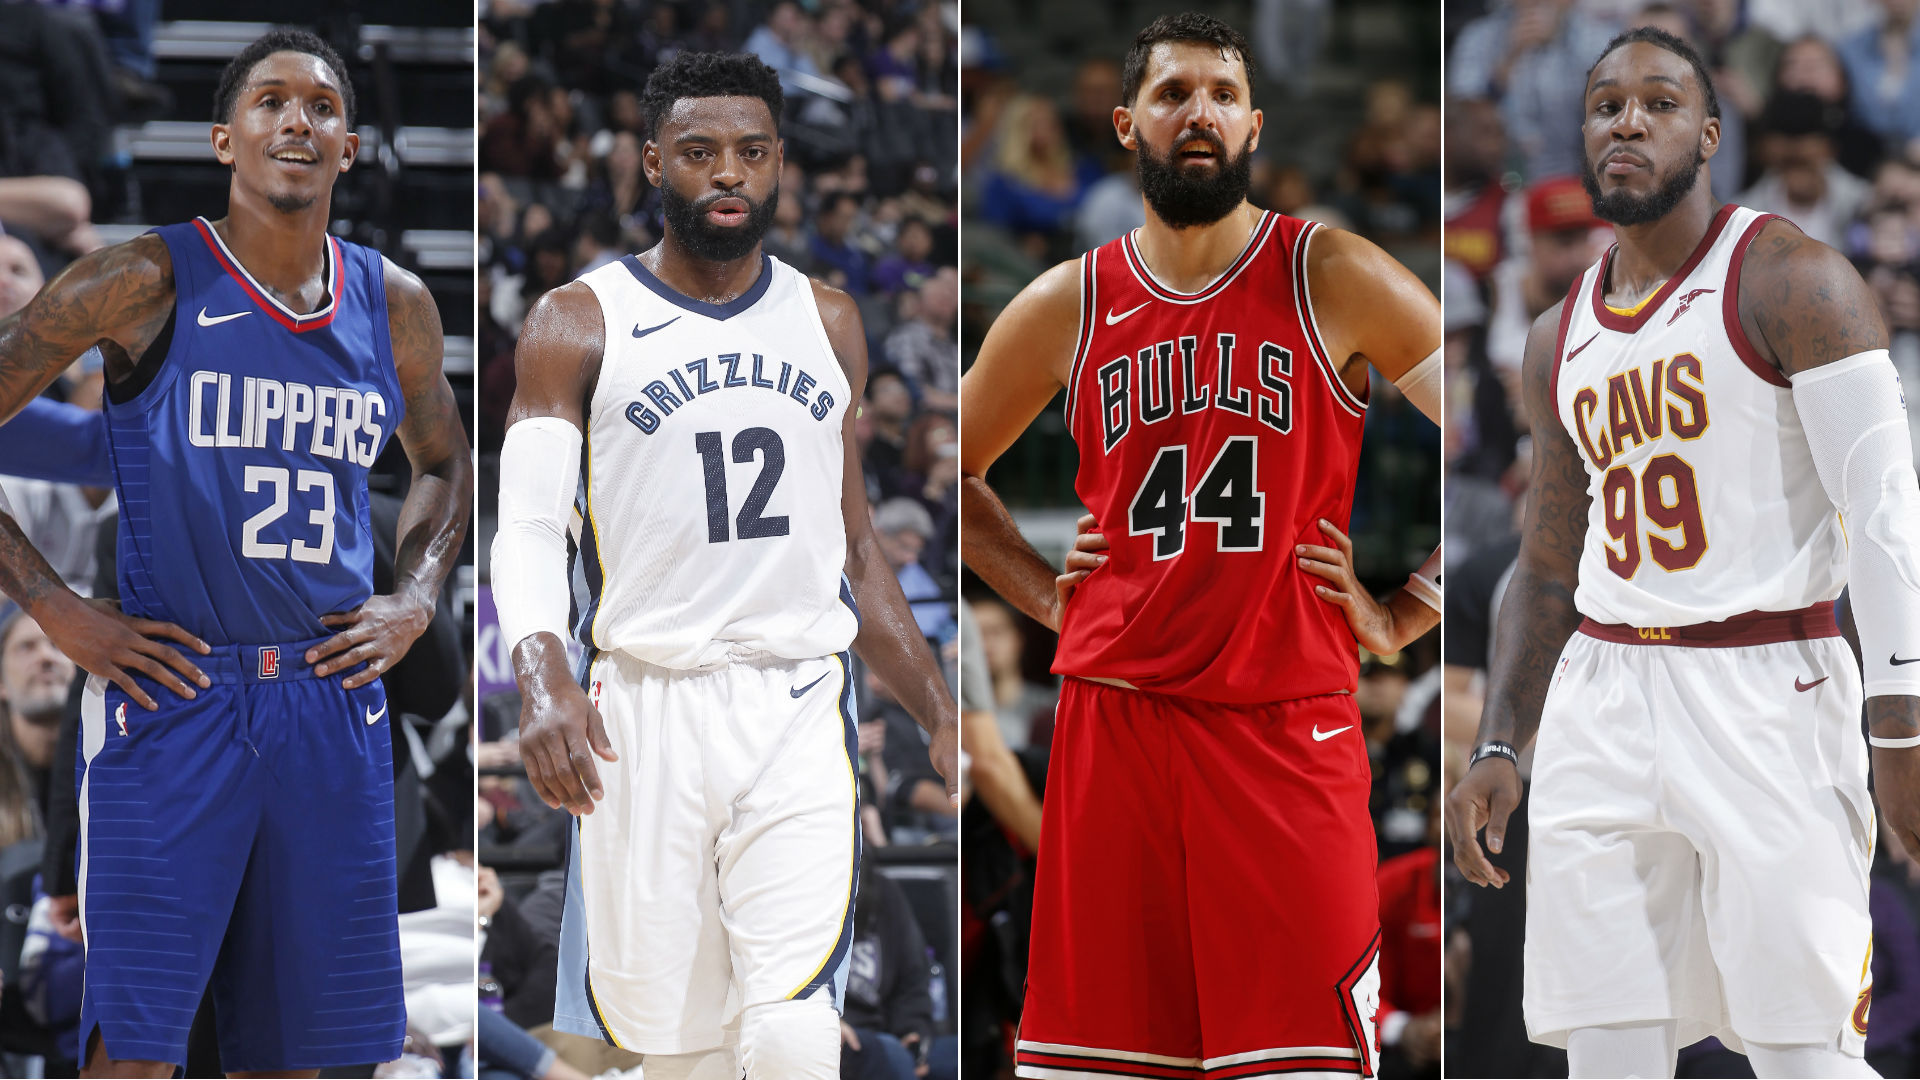 Hear us out: Some trade ideas that make sense as 2018 deadline approaches |  NBA.com